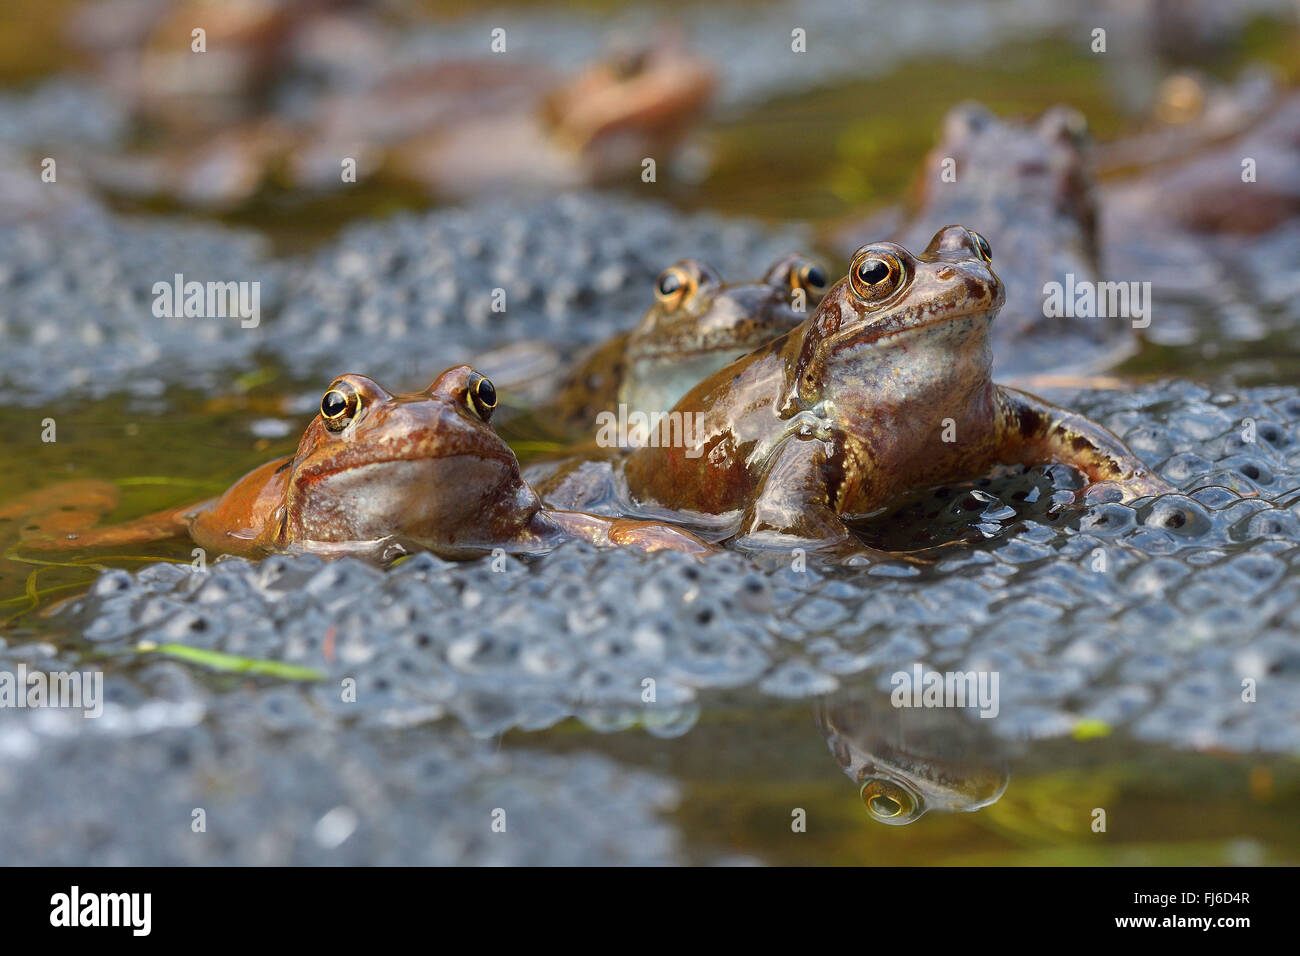 common frog, grass frog (Rana temporaria), sitting in water with eggs, Austria, Burgenland, Neusiedler See National - Stock Image